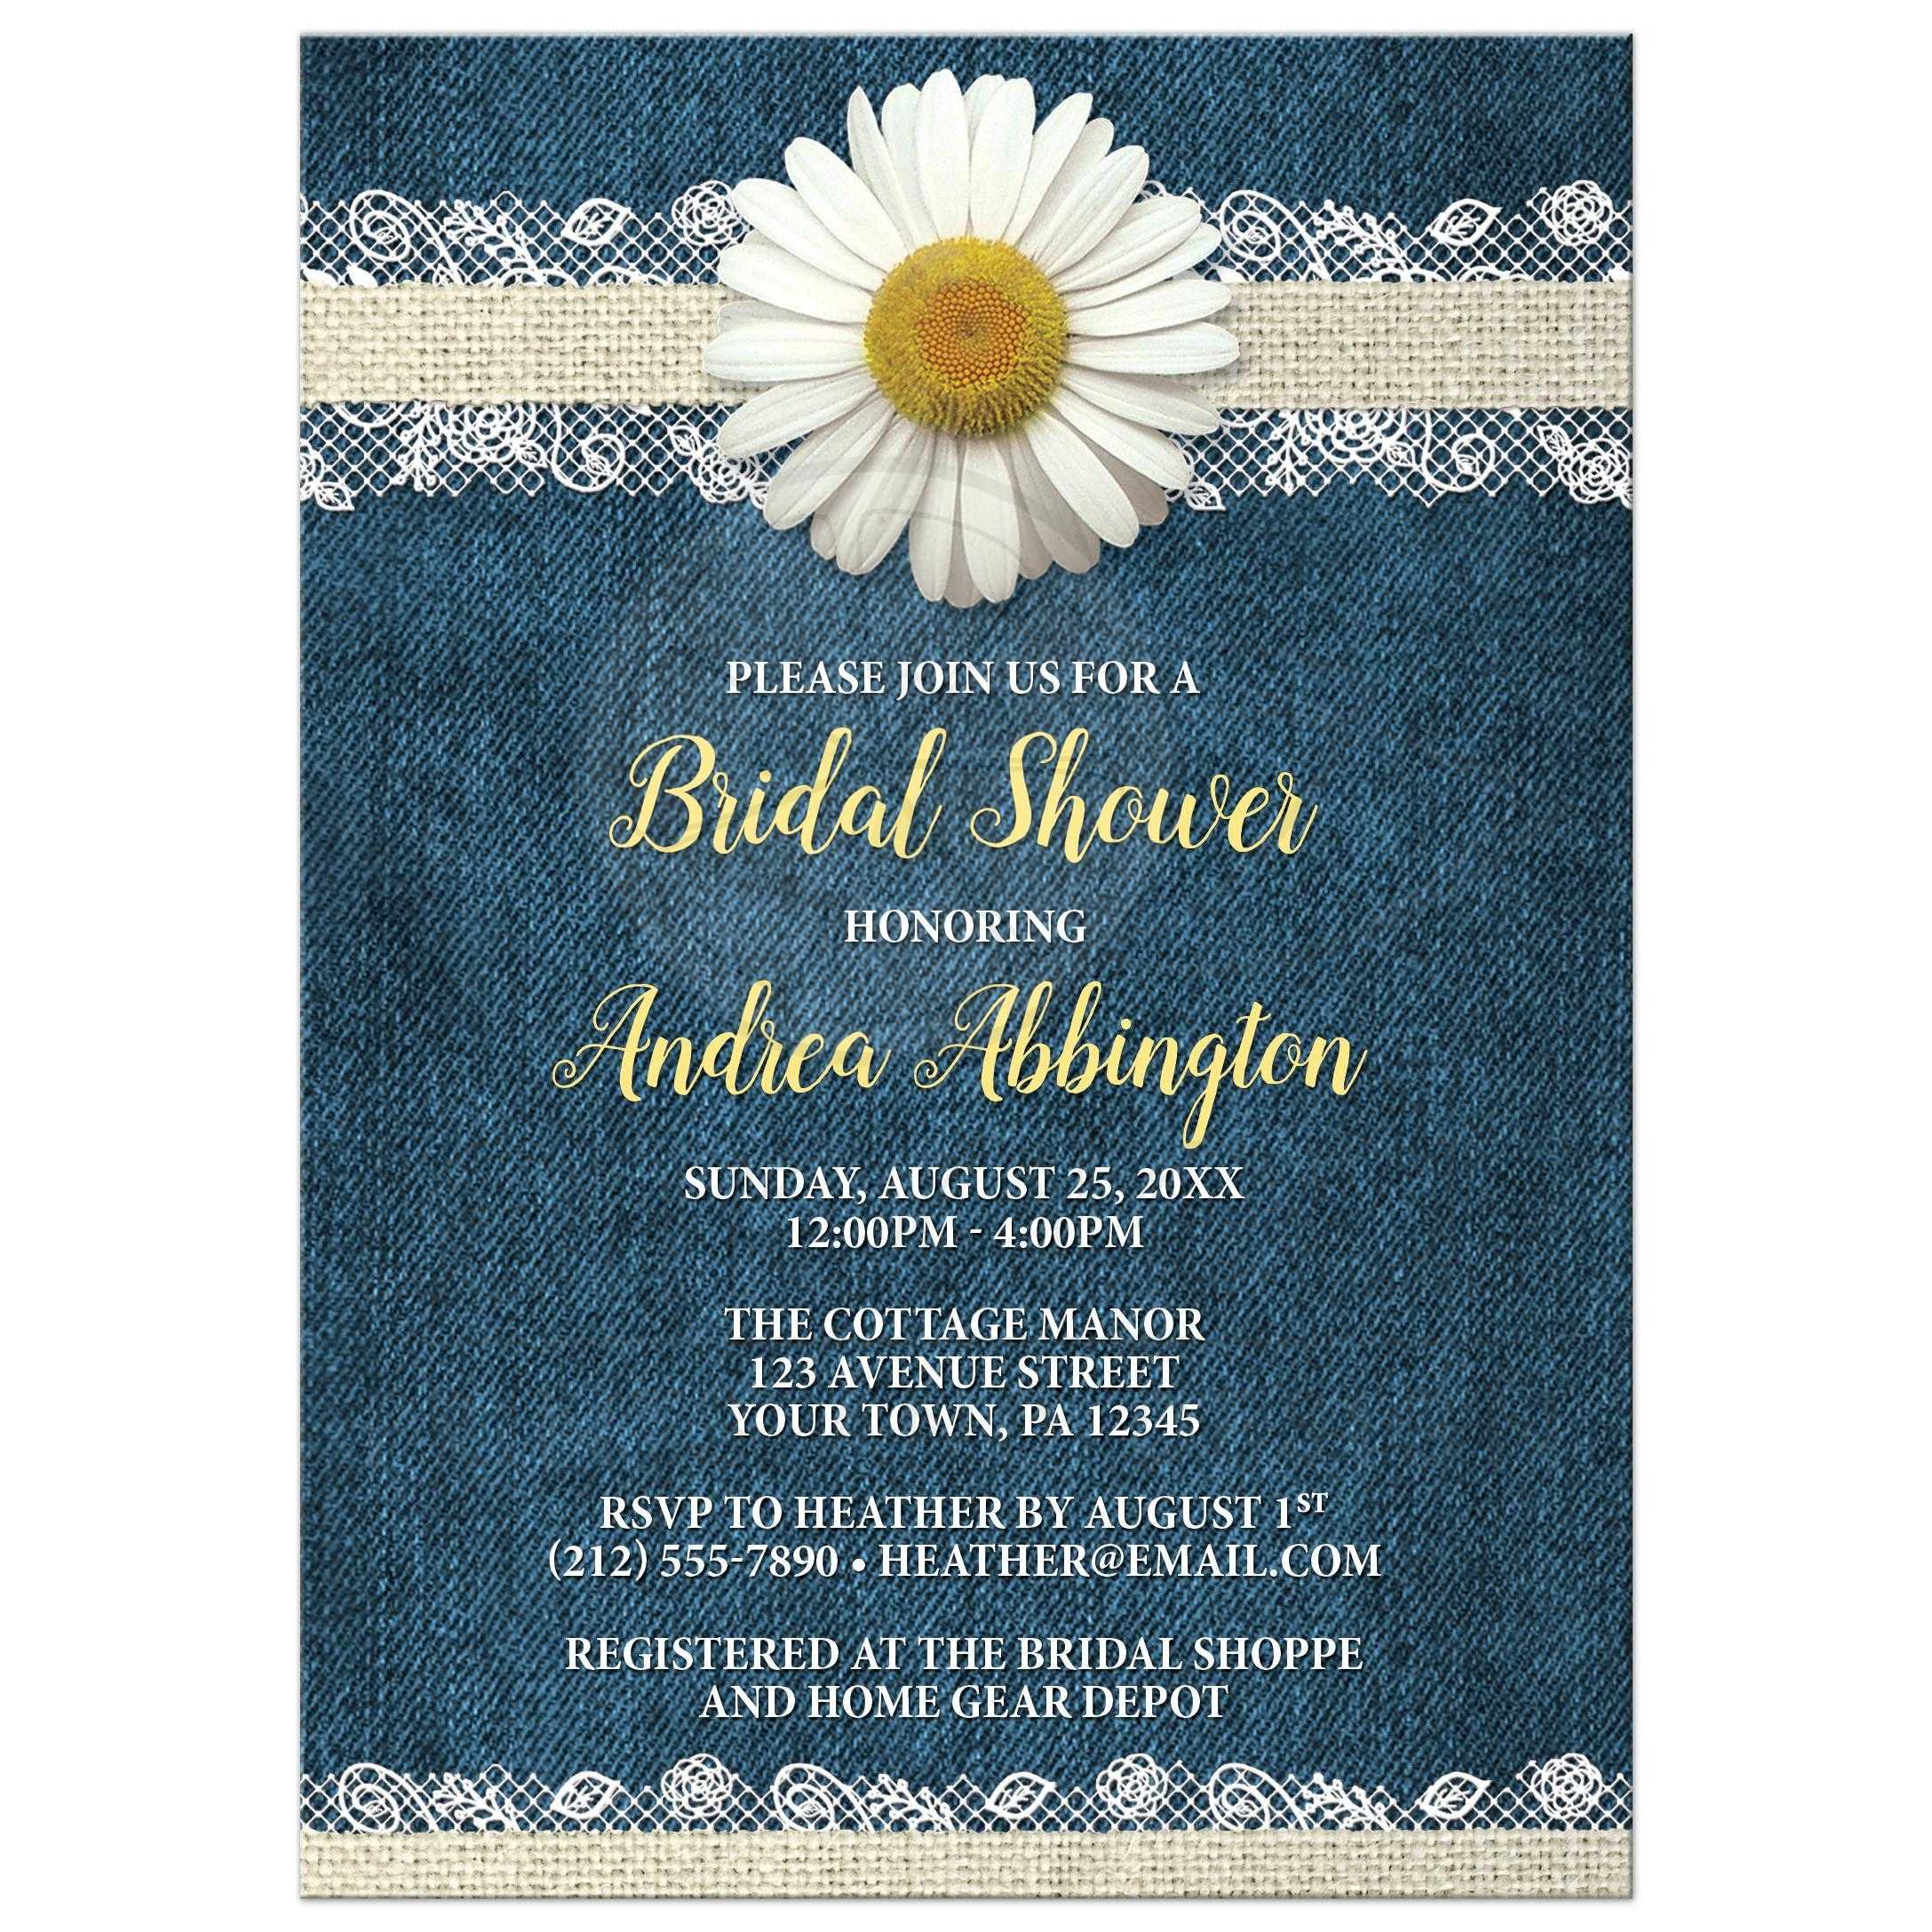 card cards blue floral navy shower or wedding bridal gerbera daisy you foldedfront thank coral